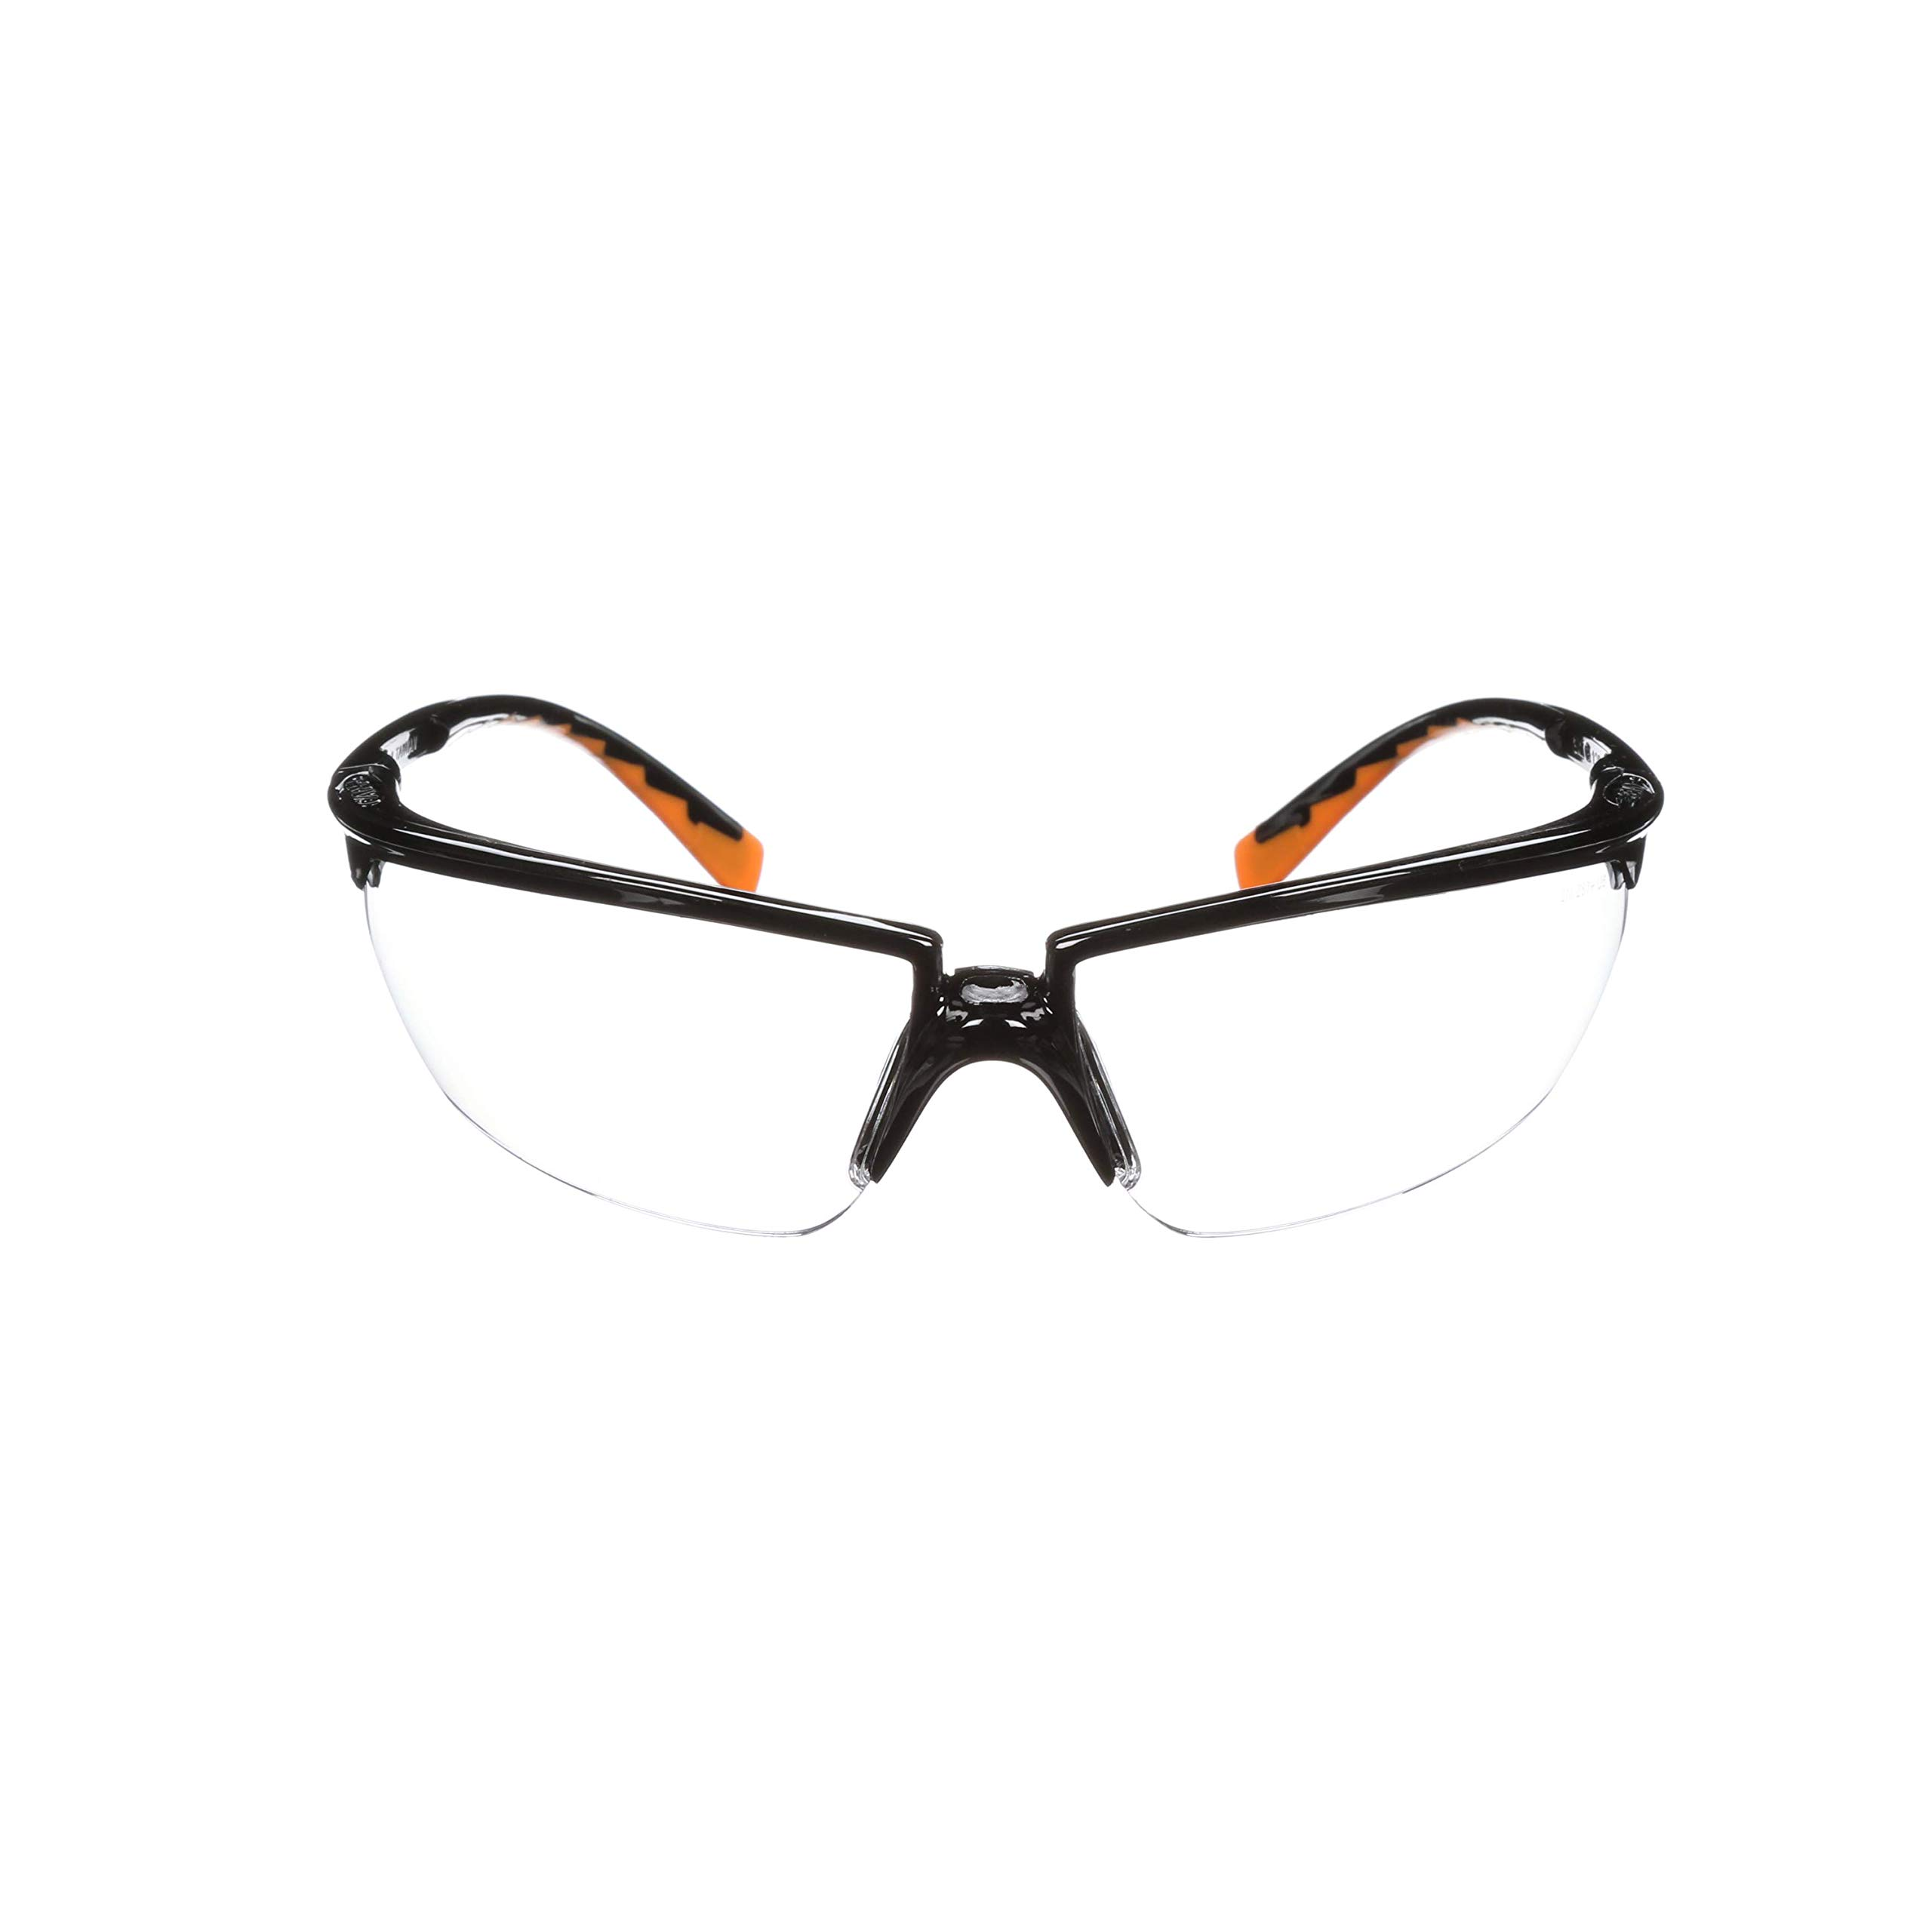 3M Privo Protective Eyewear, 12261-00000-20 Clear Anti-Fog Lens, Black Frame (Pack of 20) by 3M Personal Protective Equipment (Image #1)